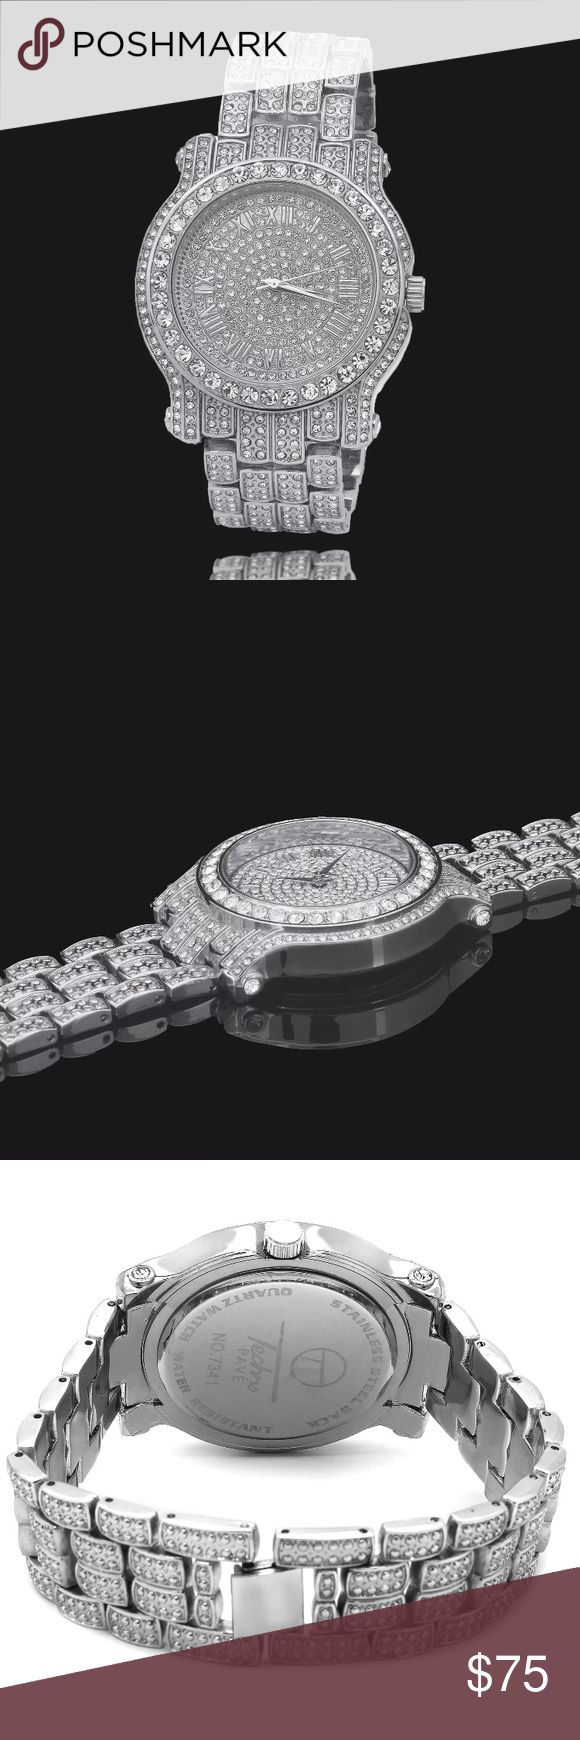 Men's ICED OUT Silver Watch Hip Hop Jewelry ICEY Specifications:  Case Diameter: 45 mm Case Thickness: 10 mm  Display: Analog dial Color: Silver Accent Color: Silver  Bracelet Material: Metal(Watchband) Bracelet Width: 21mm Clasp Type: Luxury buckle Movement: pc21 movement (one of the best in the world) Power Supply: 1x button cell Battery  BRAND NEW   ALL ITEMS ARE NEW / UNUSED IN SEALED PACKAGE. I ONLY SELL TOP QUALITY PRODUCTS. Accessories Watches